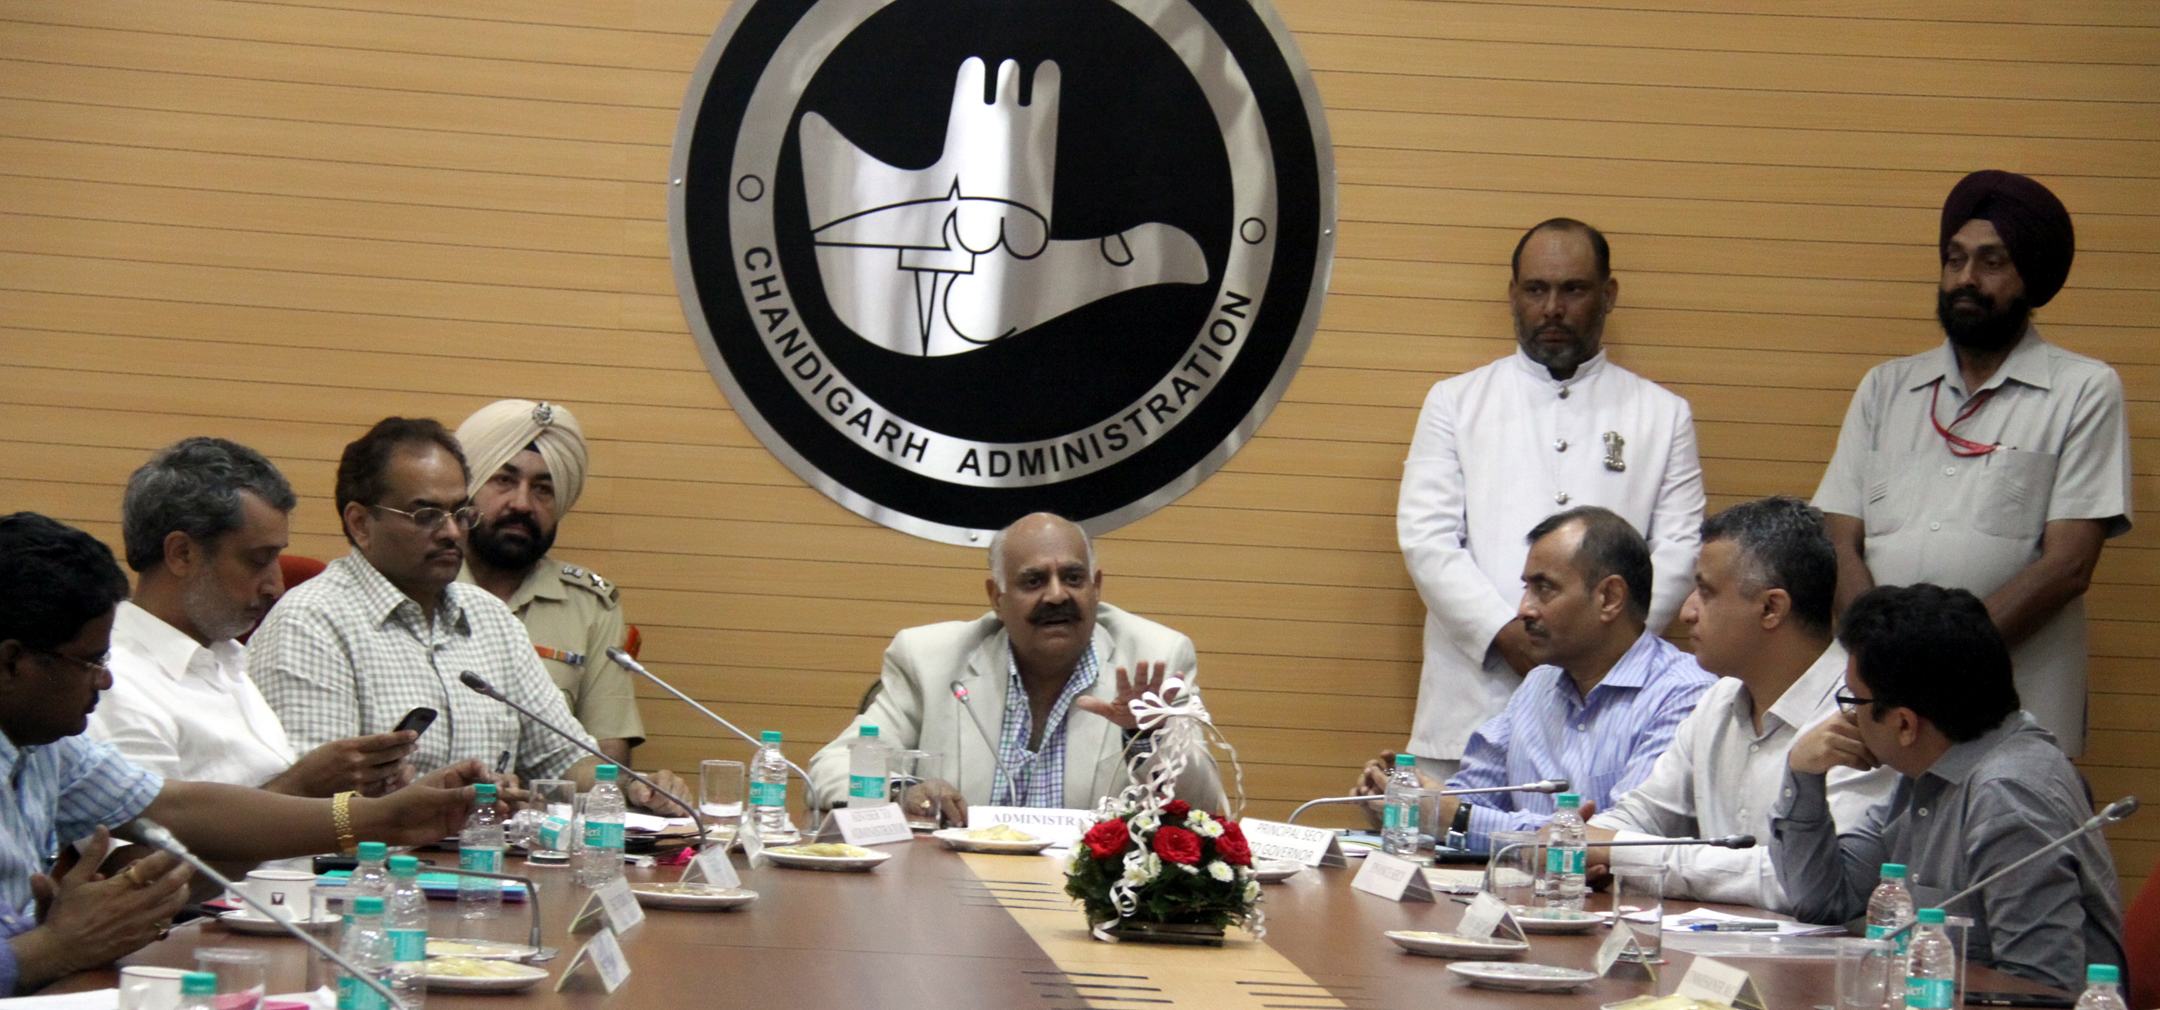 The Governor of Punjab and Administrator, Union Territory, Chandigarh, Shri V.P. Singh Badnore alongwith the Adviser to the Administrator, UT, Chandigarh, Shri Parimal Rai in a meeting with the seniors officer of Chandigarh Administration at UT Secretariat, Chandigarh on Wednesday, August 24, 2016.